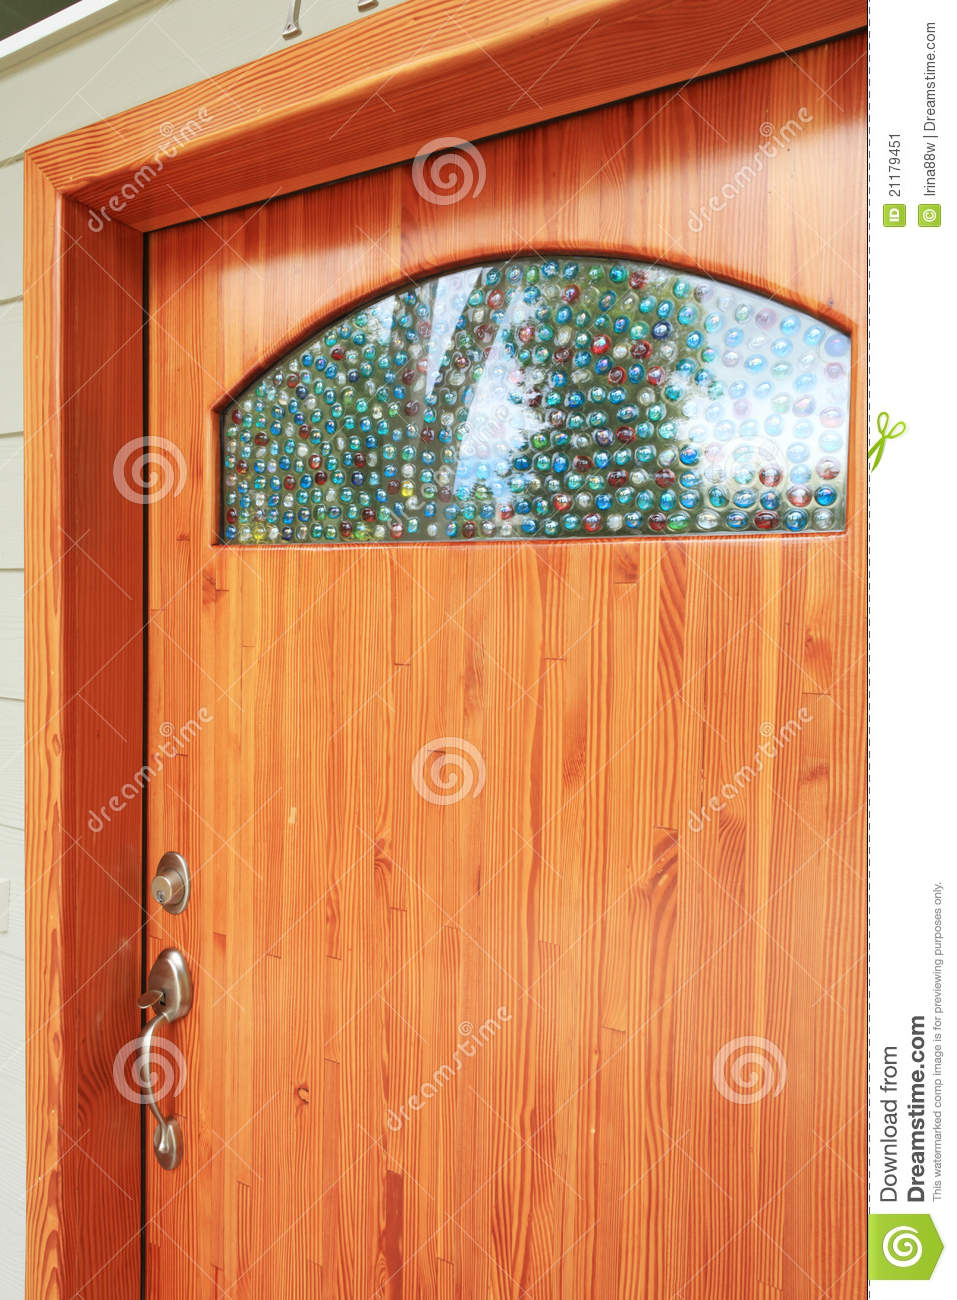 Build a front door quote